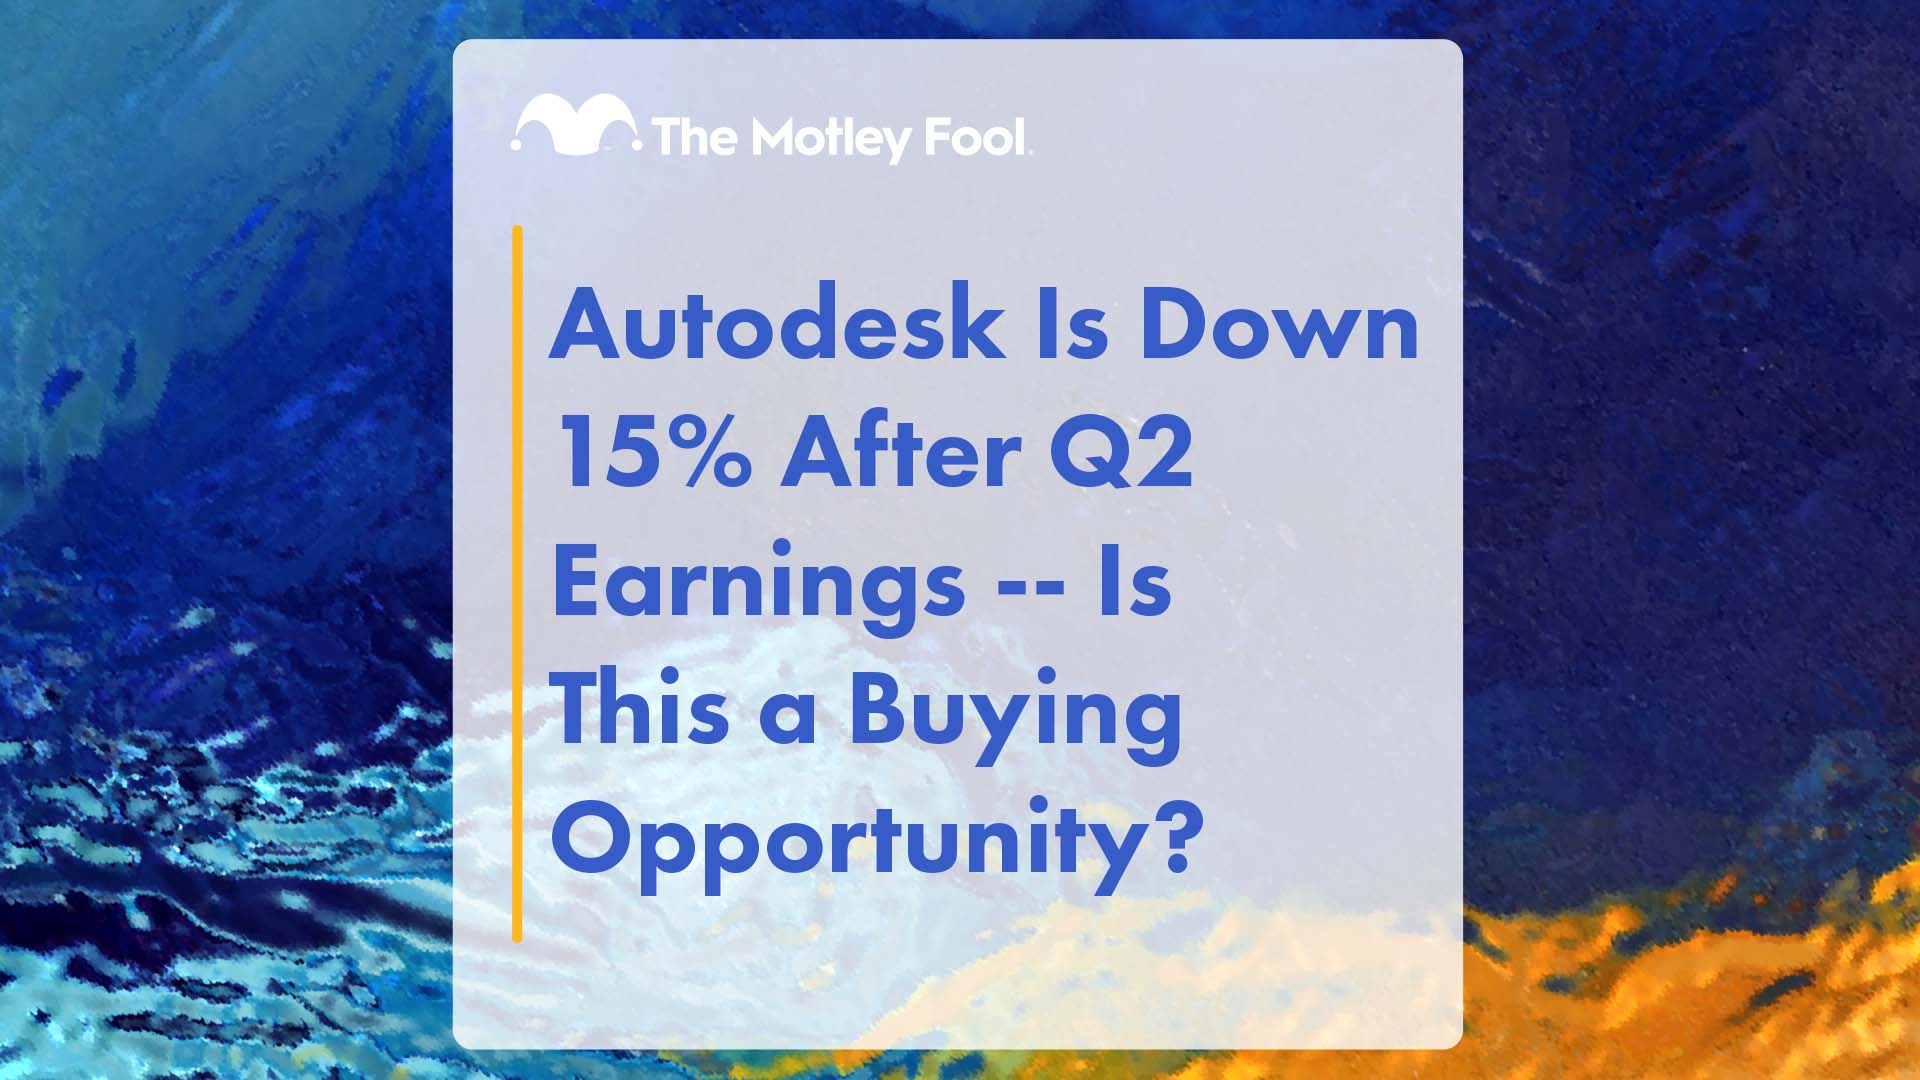 Autodesk Is Down 15% After Q2 Earnings -- Is This a Buying Opportunity?